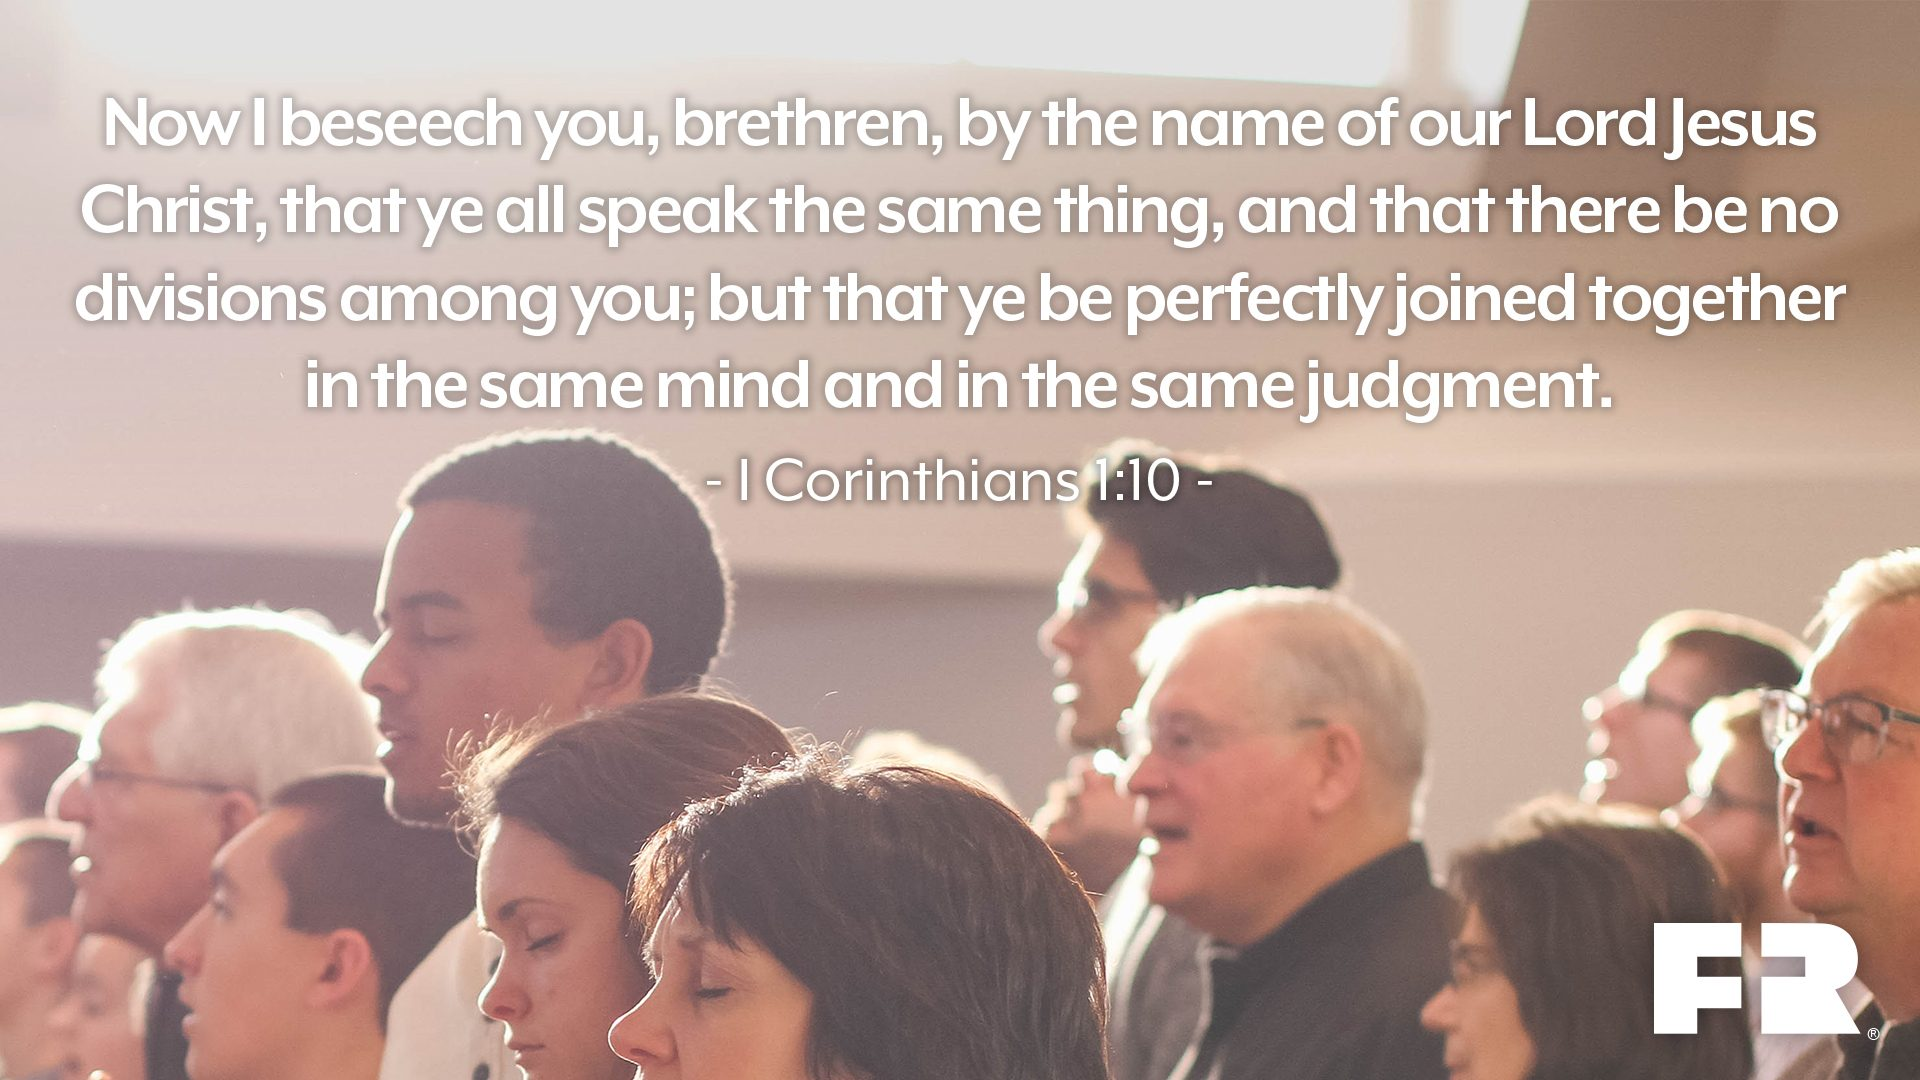 """Now I beseech you, brethren, by the name of our Lord Jesus Christ, that ye all speak the same thing, and that there be no divisions among you; but that ye be perfectly joined together in the same mind and in the same judgment."""